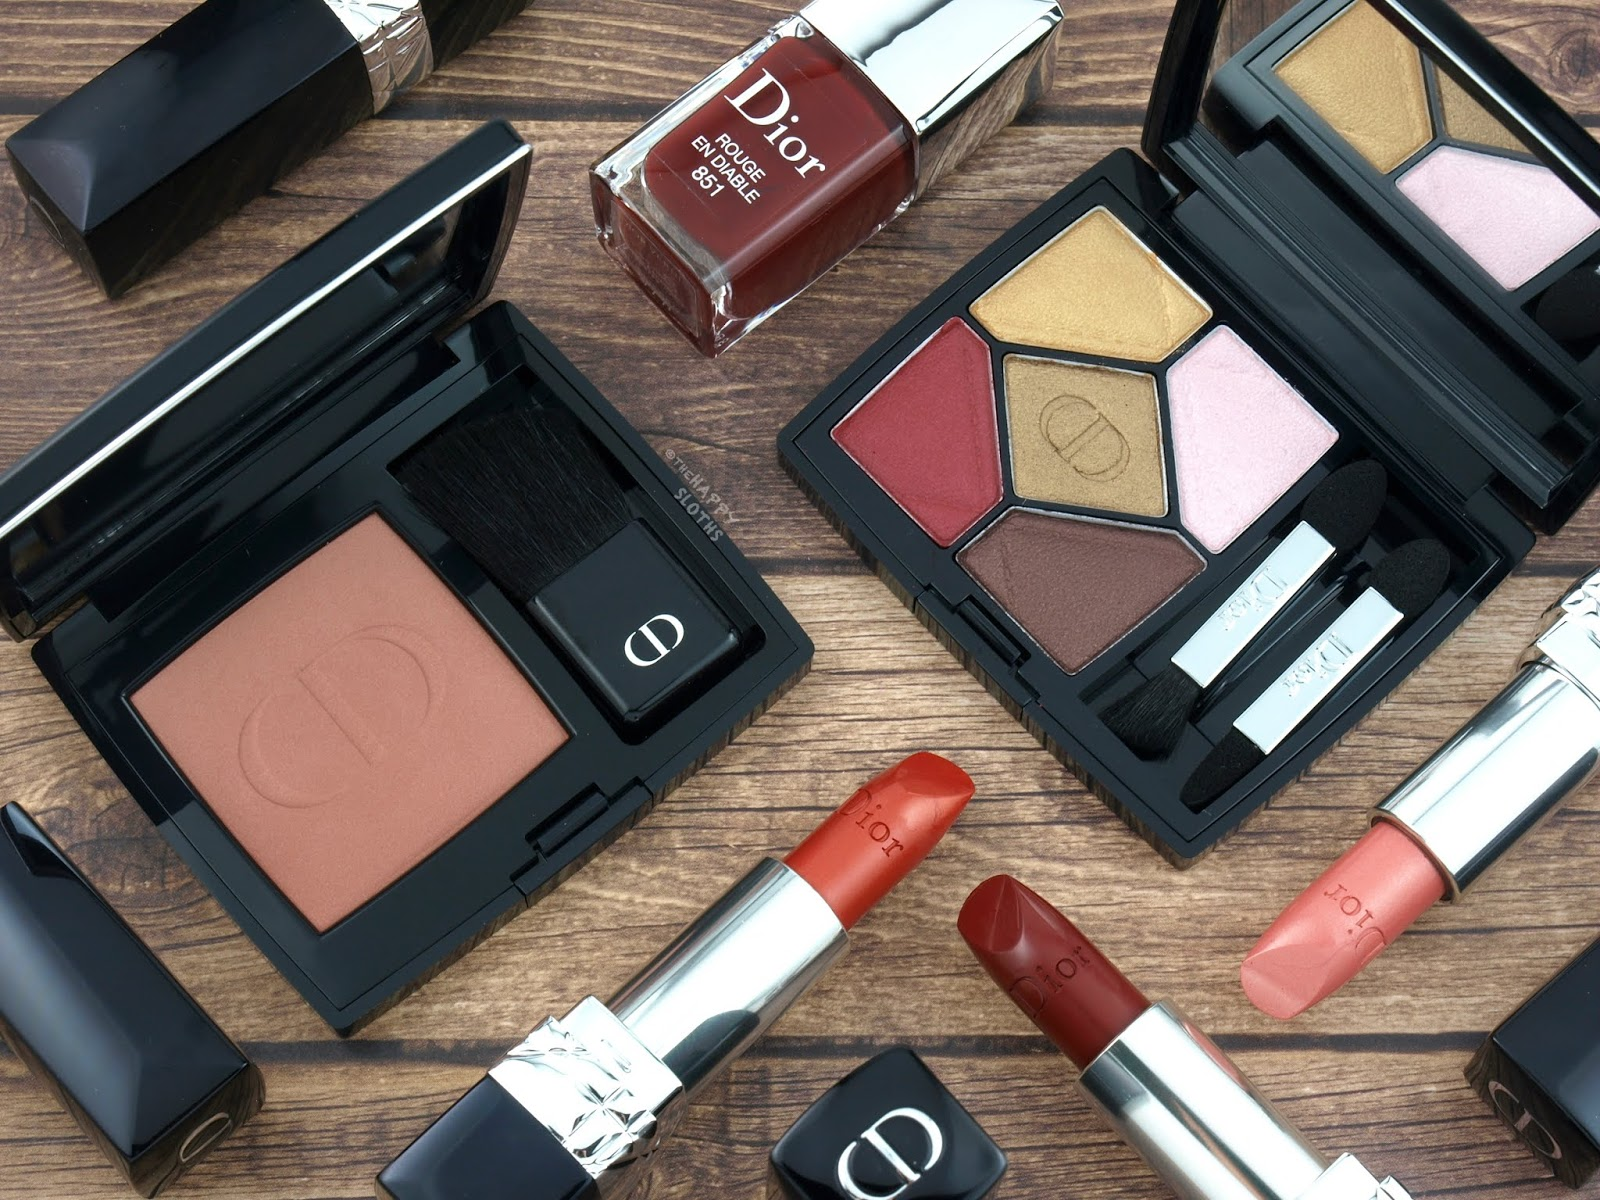 Dior | Fall 2018 Dior en Diable Collection: Review and Swatches